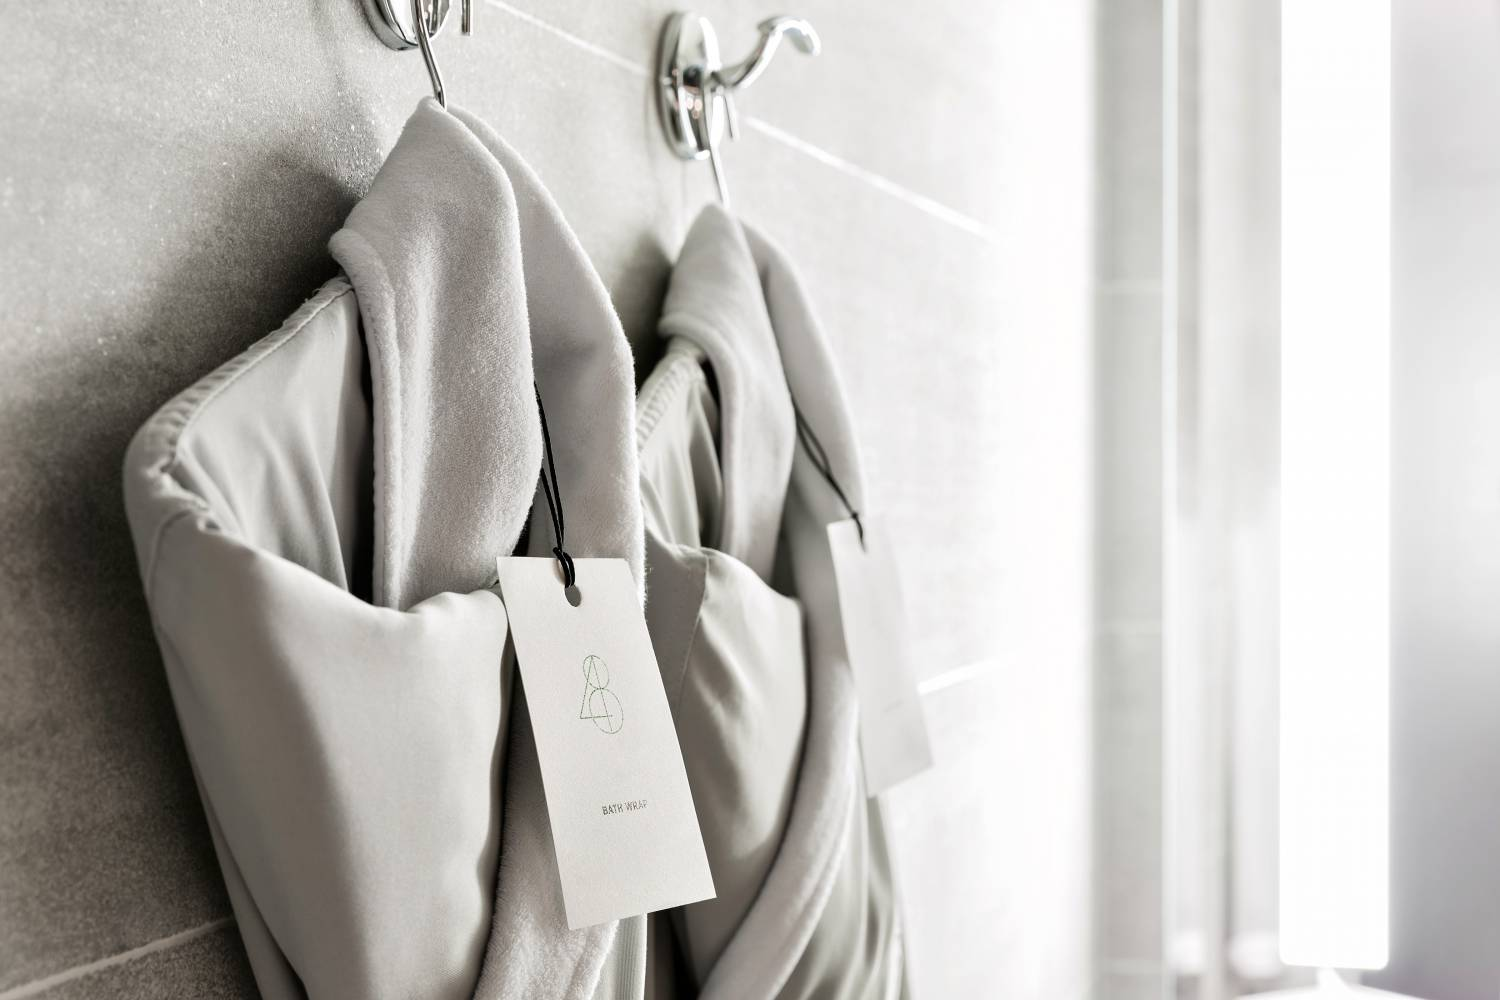 robes at Hotel 48Lex New York